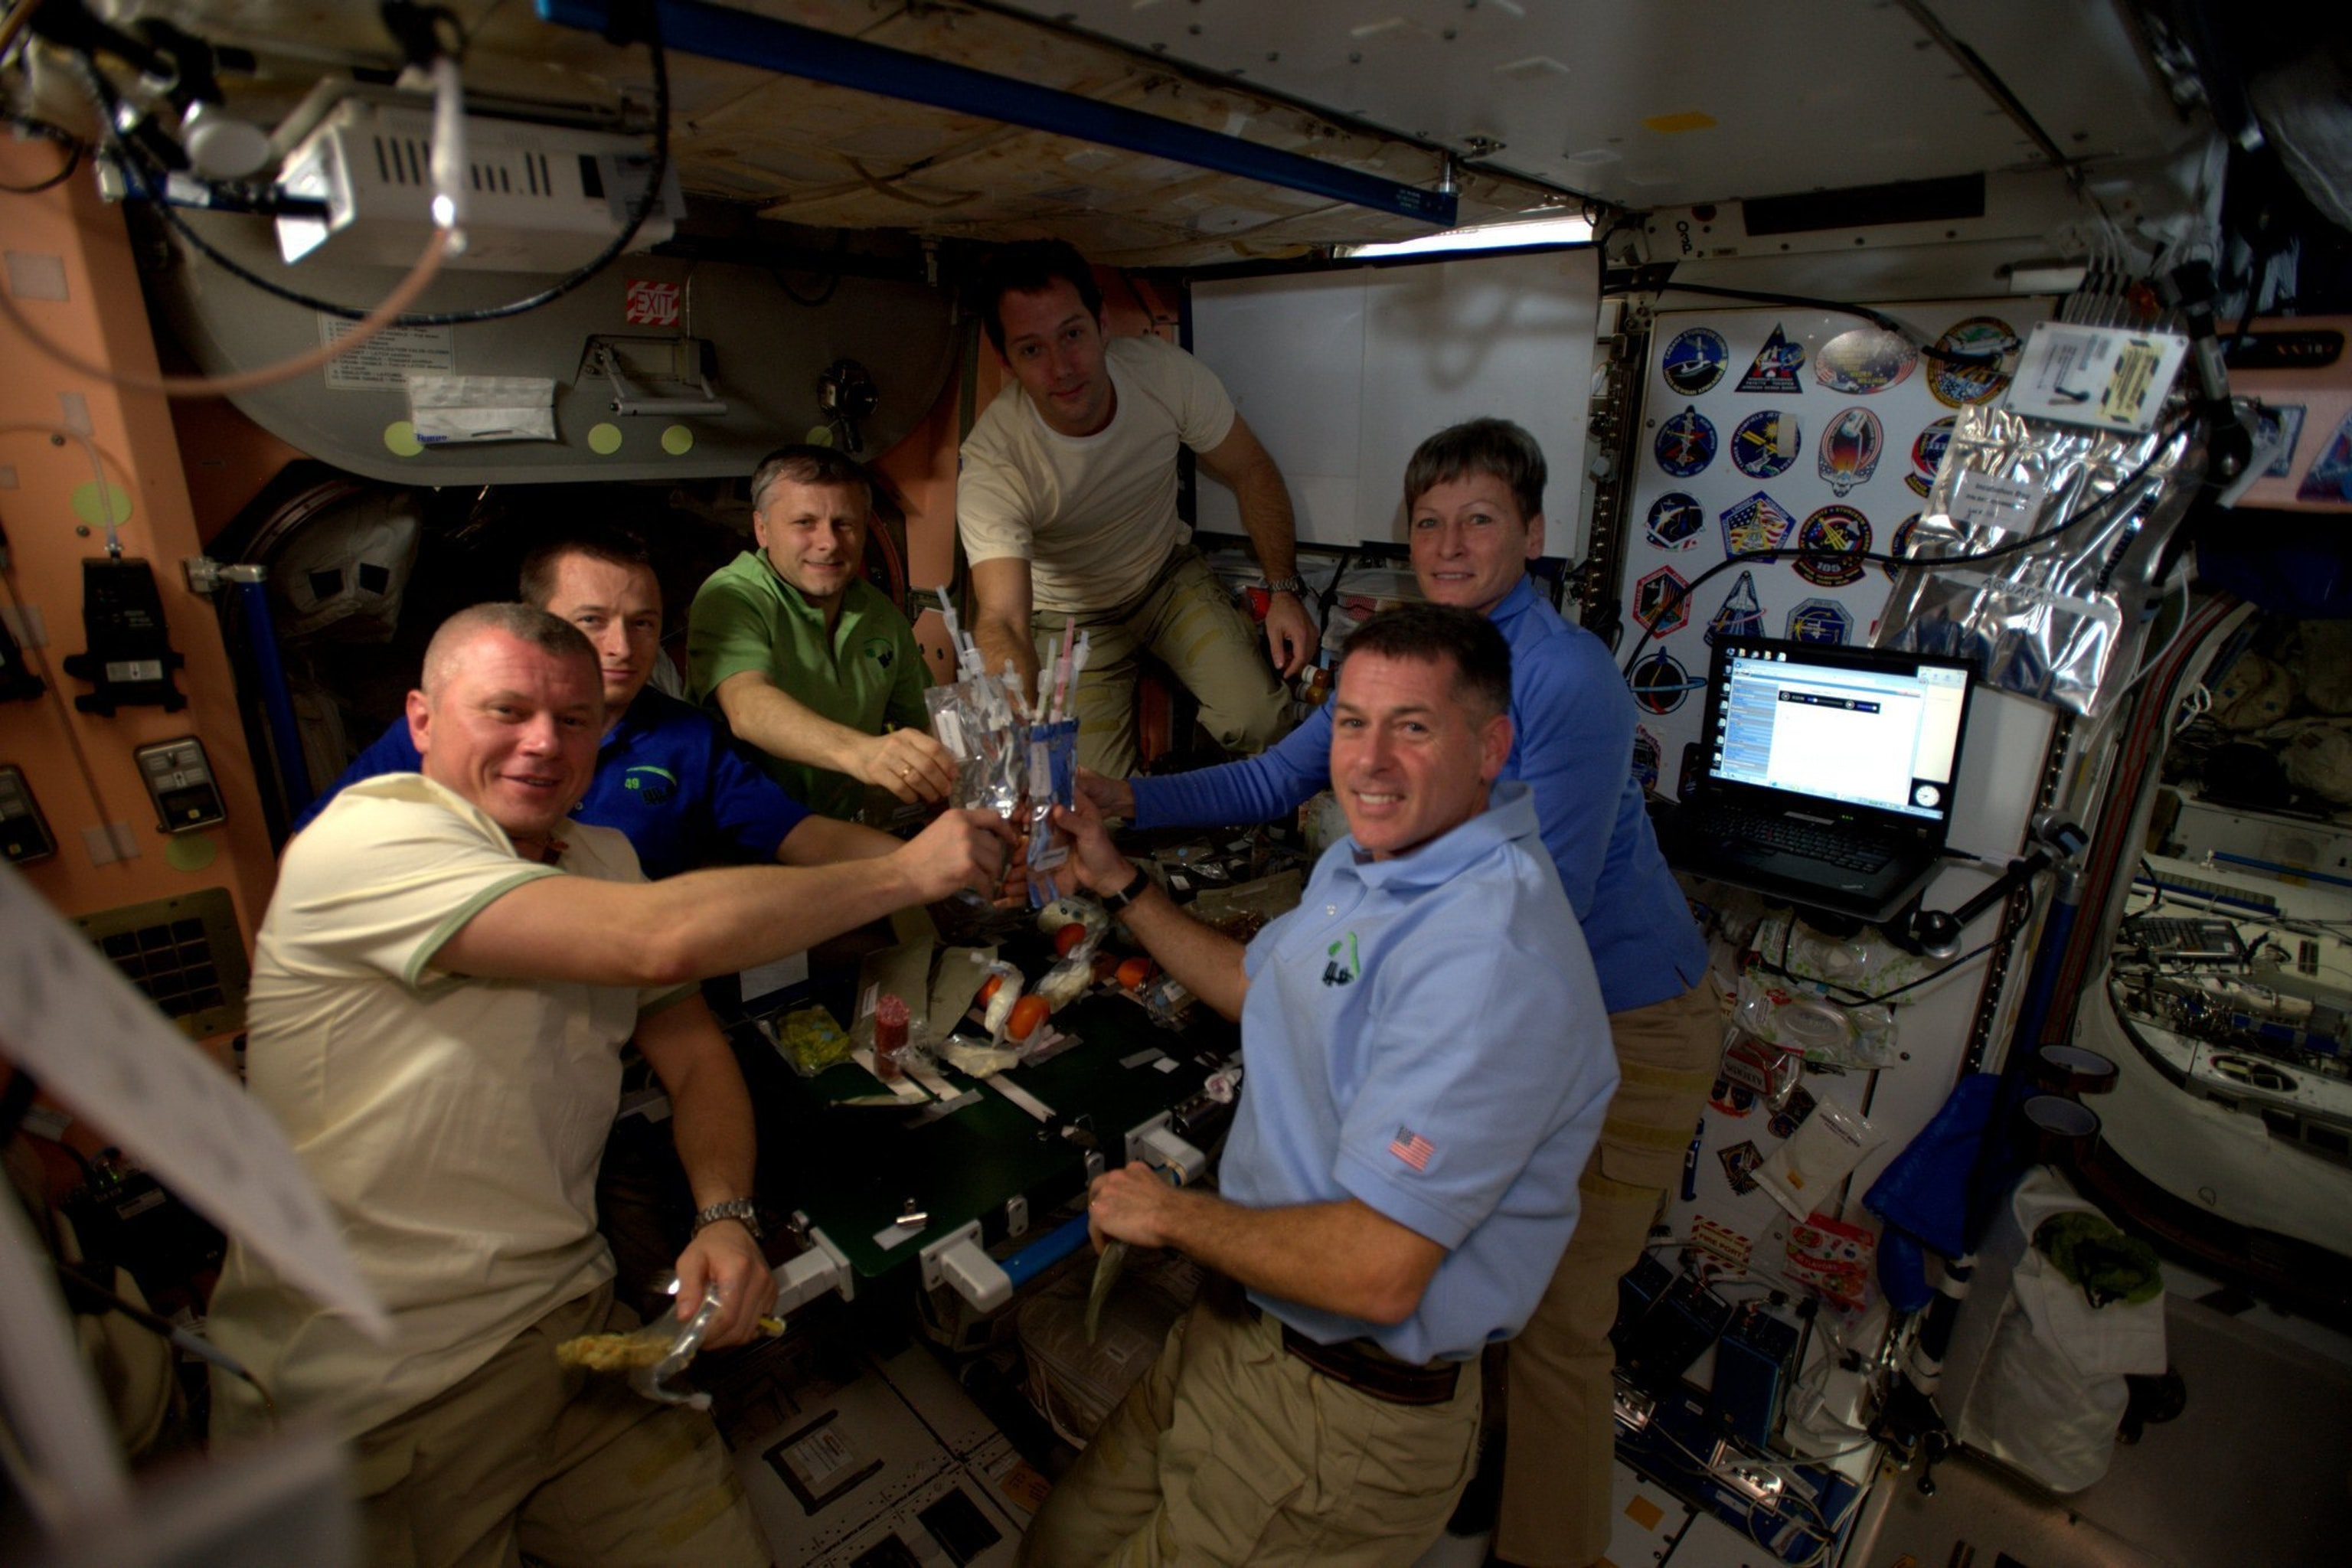 The six expedition 50 crew members celebrate Thanksgiving in space.